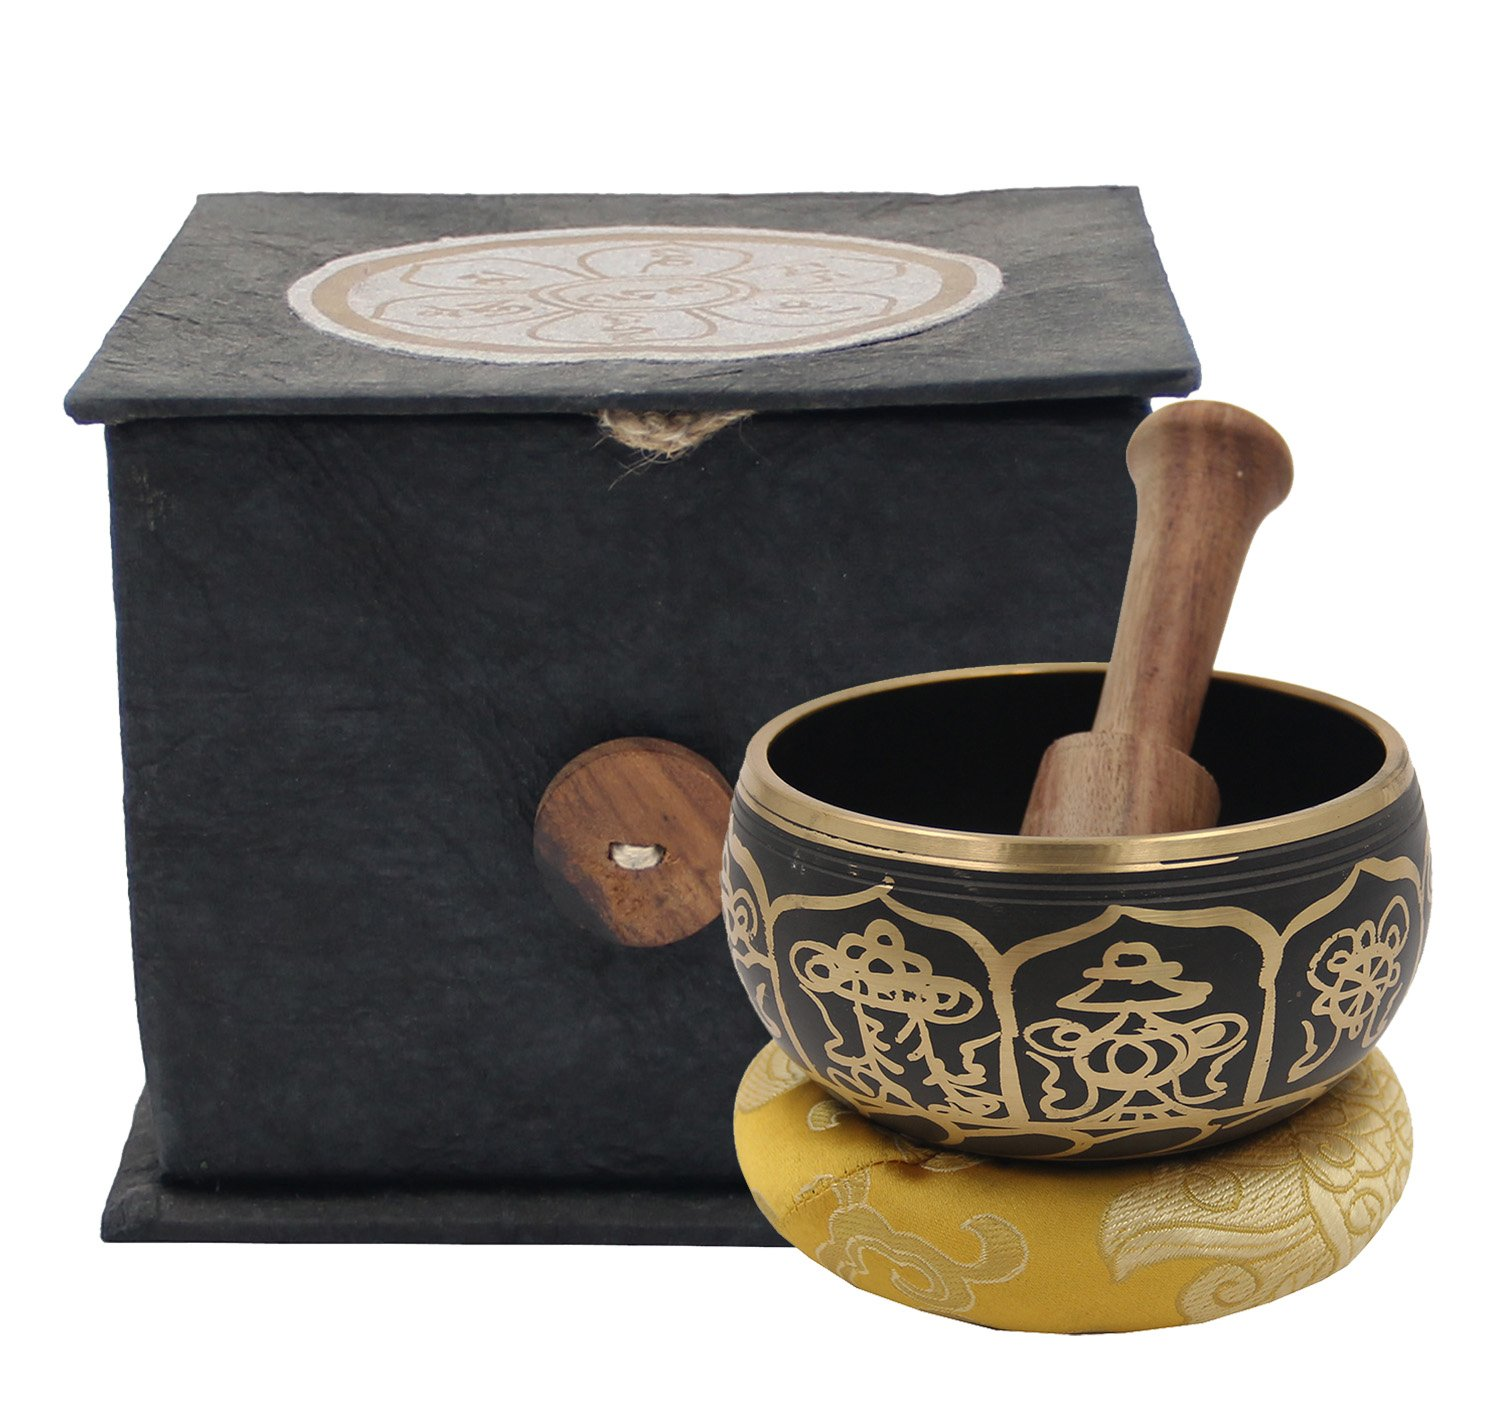 DharmaObjects Tibetan Buddhist Meditation Healing Chakra Therapy Singing Bowl Mallet And Cushion Box Gift Set (Om Mani Padme Hum) Lungta Imports 4334201826